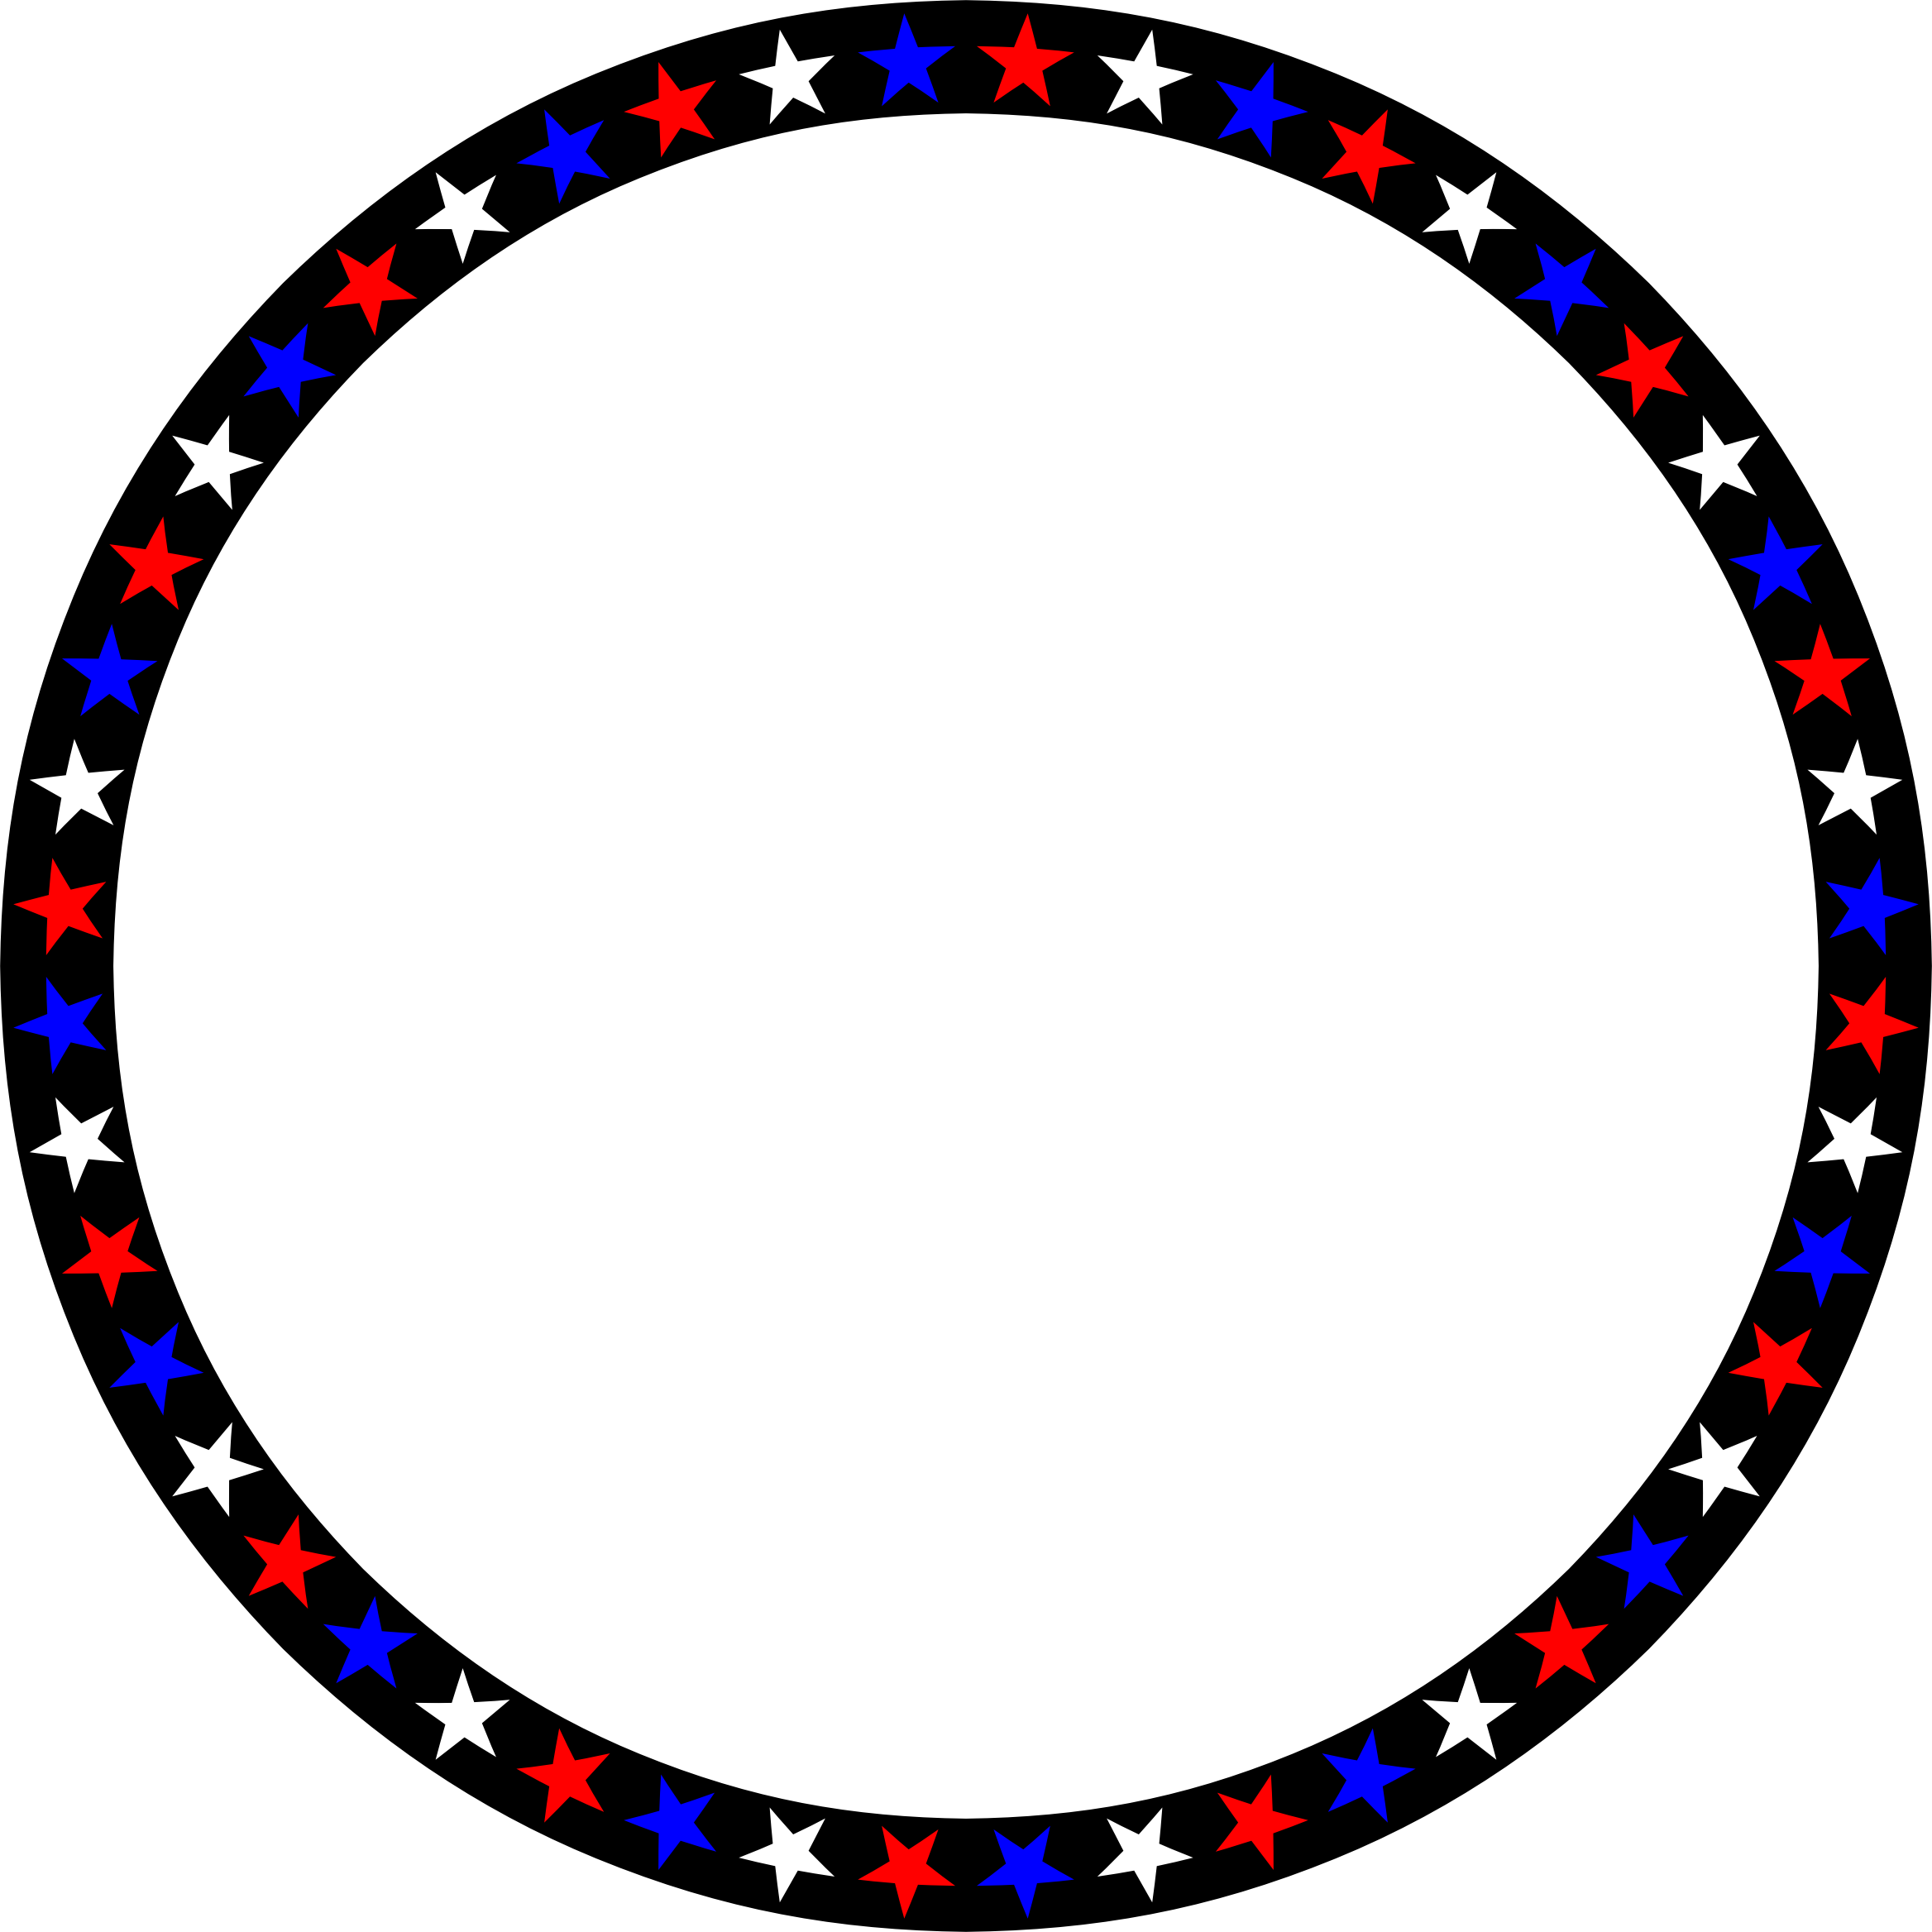 Red white and blue star border clipart png freeuse library Clipart - Red White Blue Stars Circle png freeuse library